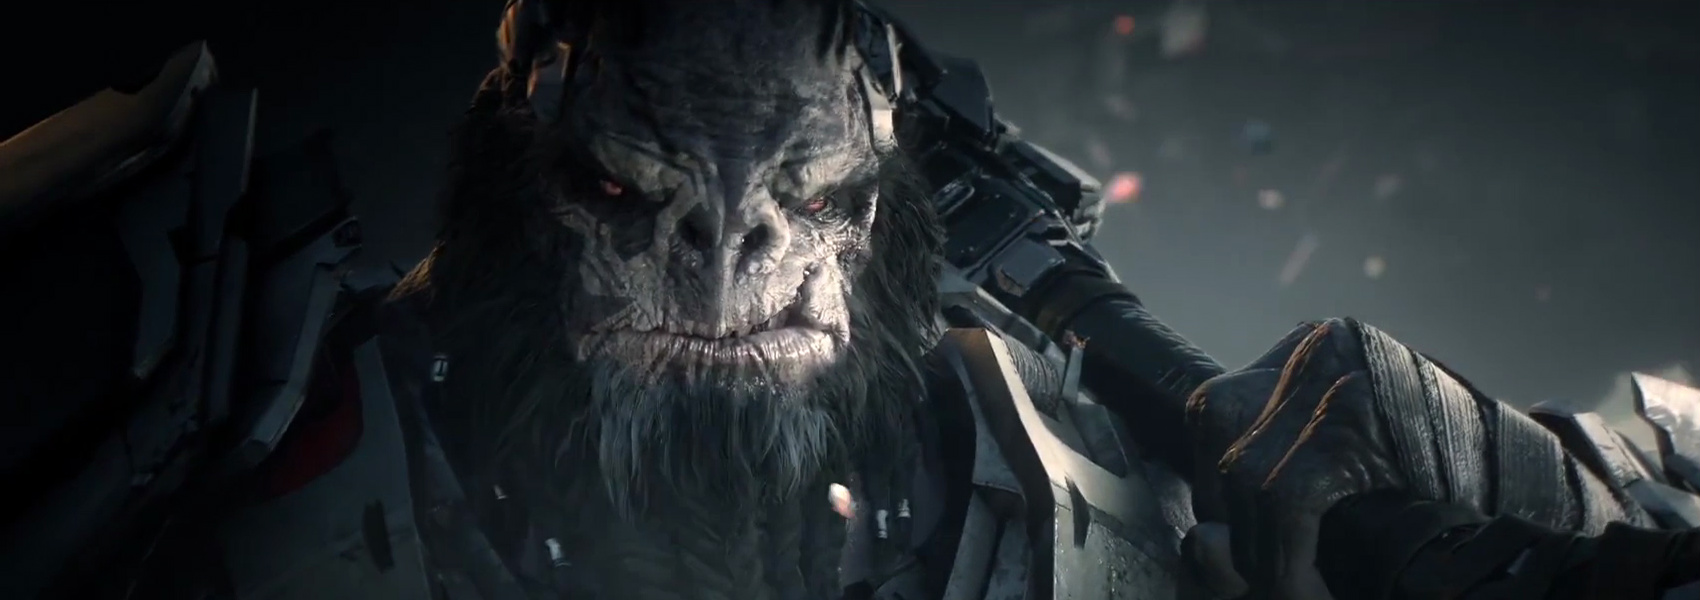 ATRIOX - Leader of the Banished, Atriox is perhaps the smartest, if not the strongest Jiralhanae commander known to humanity.